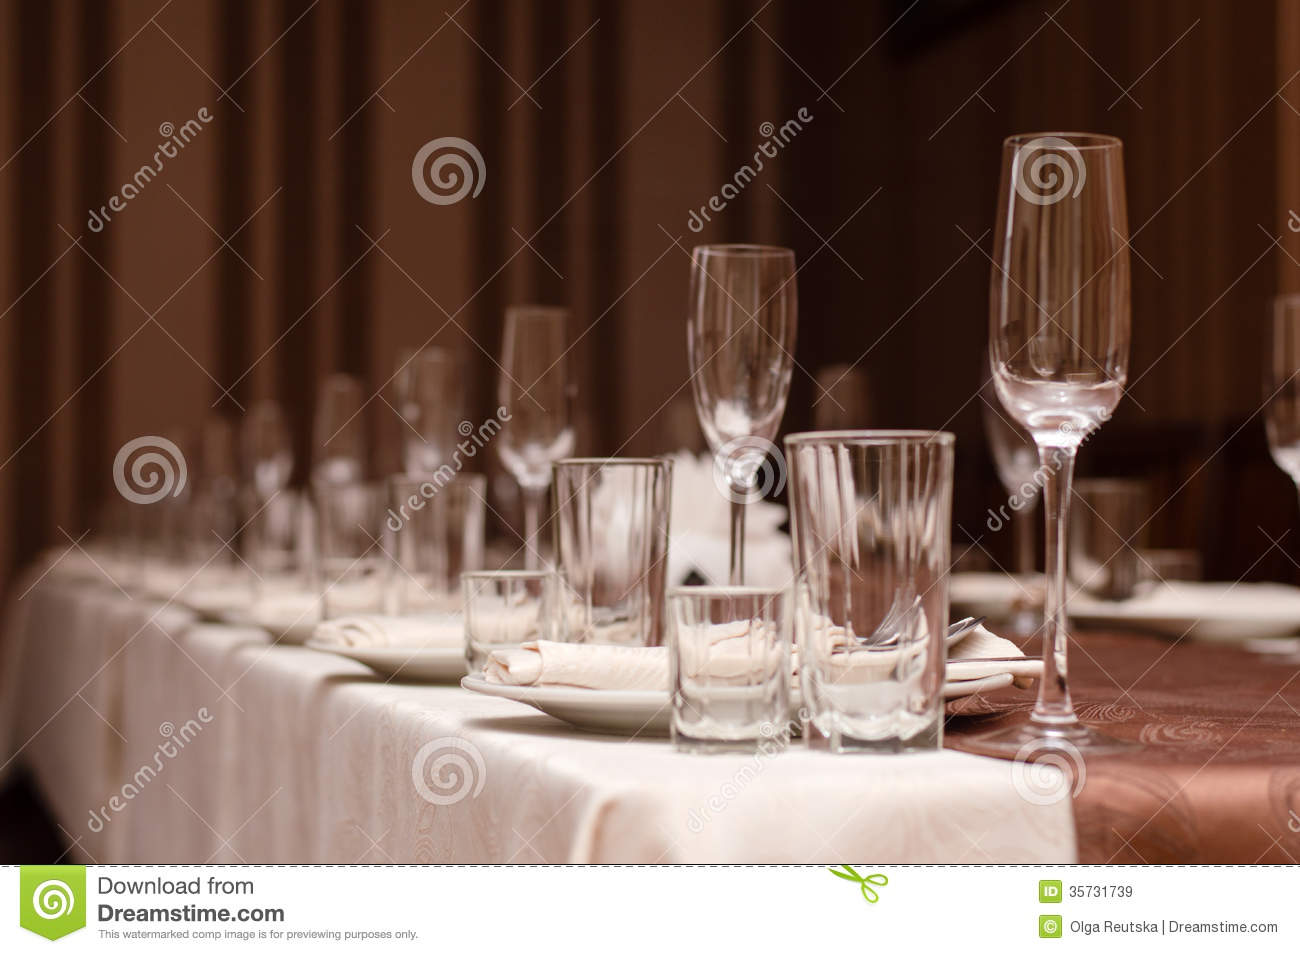 Disposition des verres design en image - Disposition des verres sur table ...